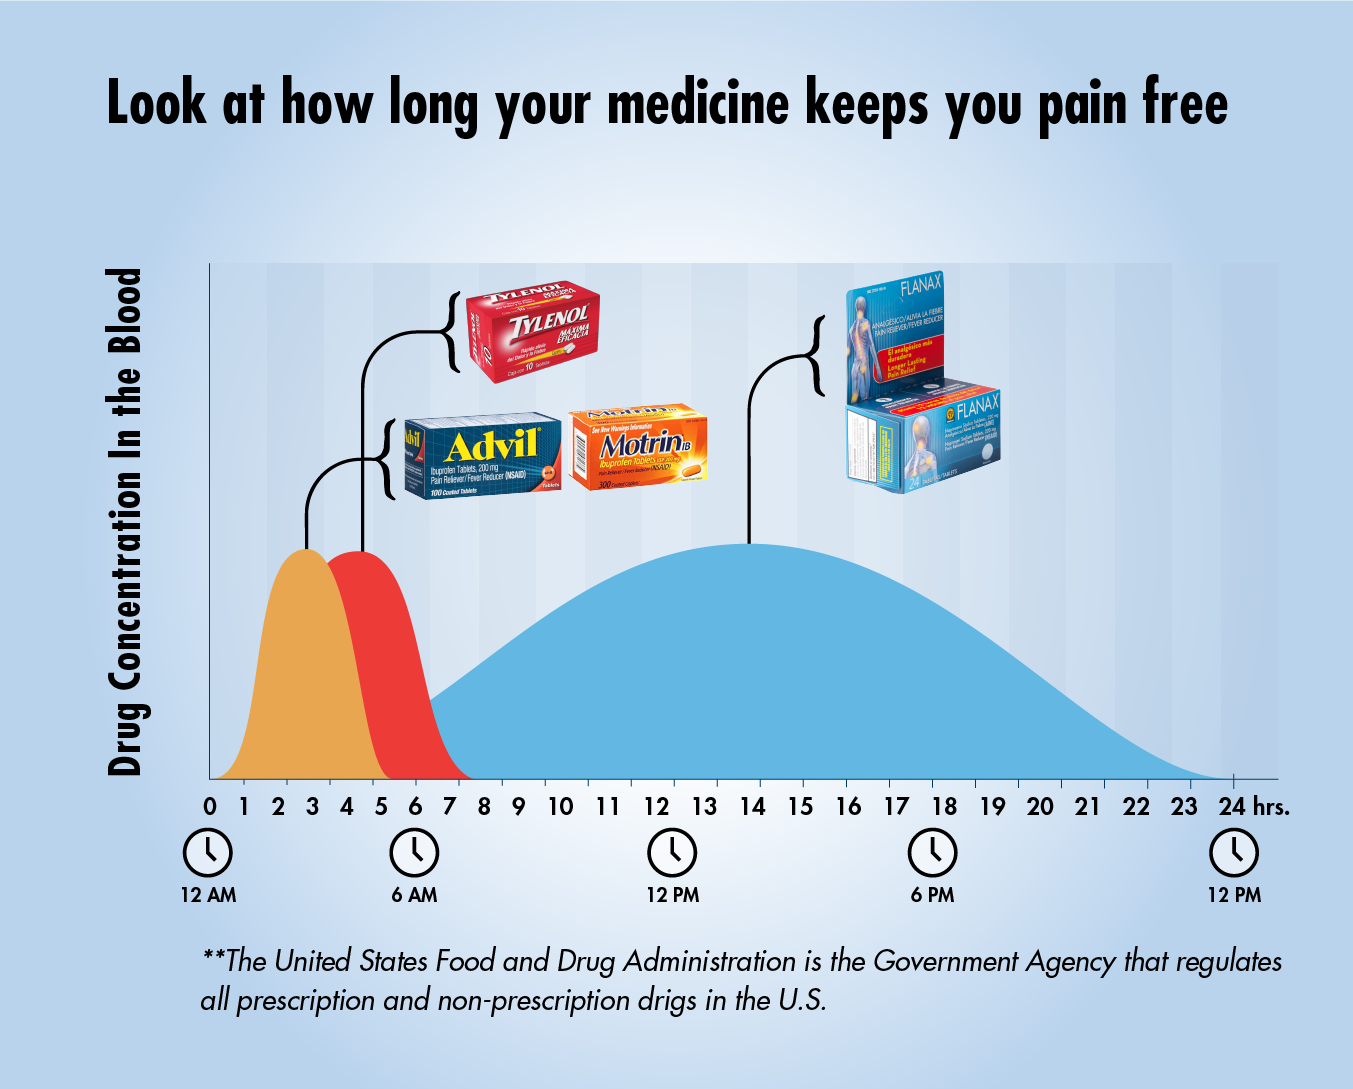 How long your medicine keeps you pain free. Drug concentration in the